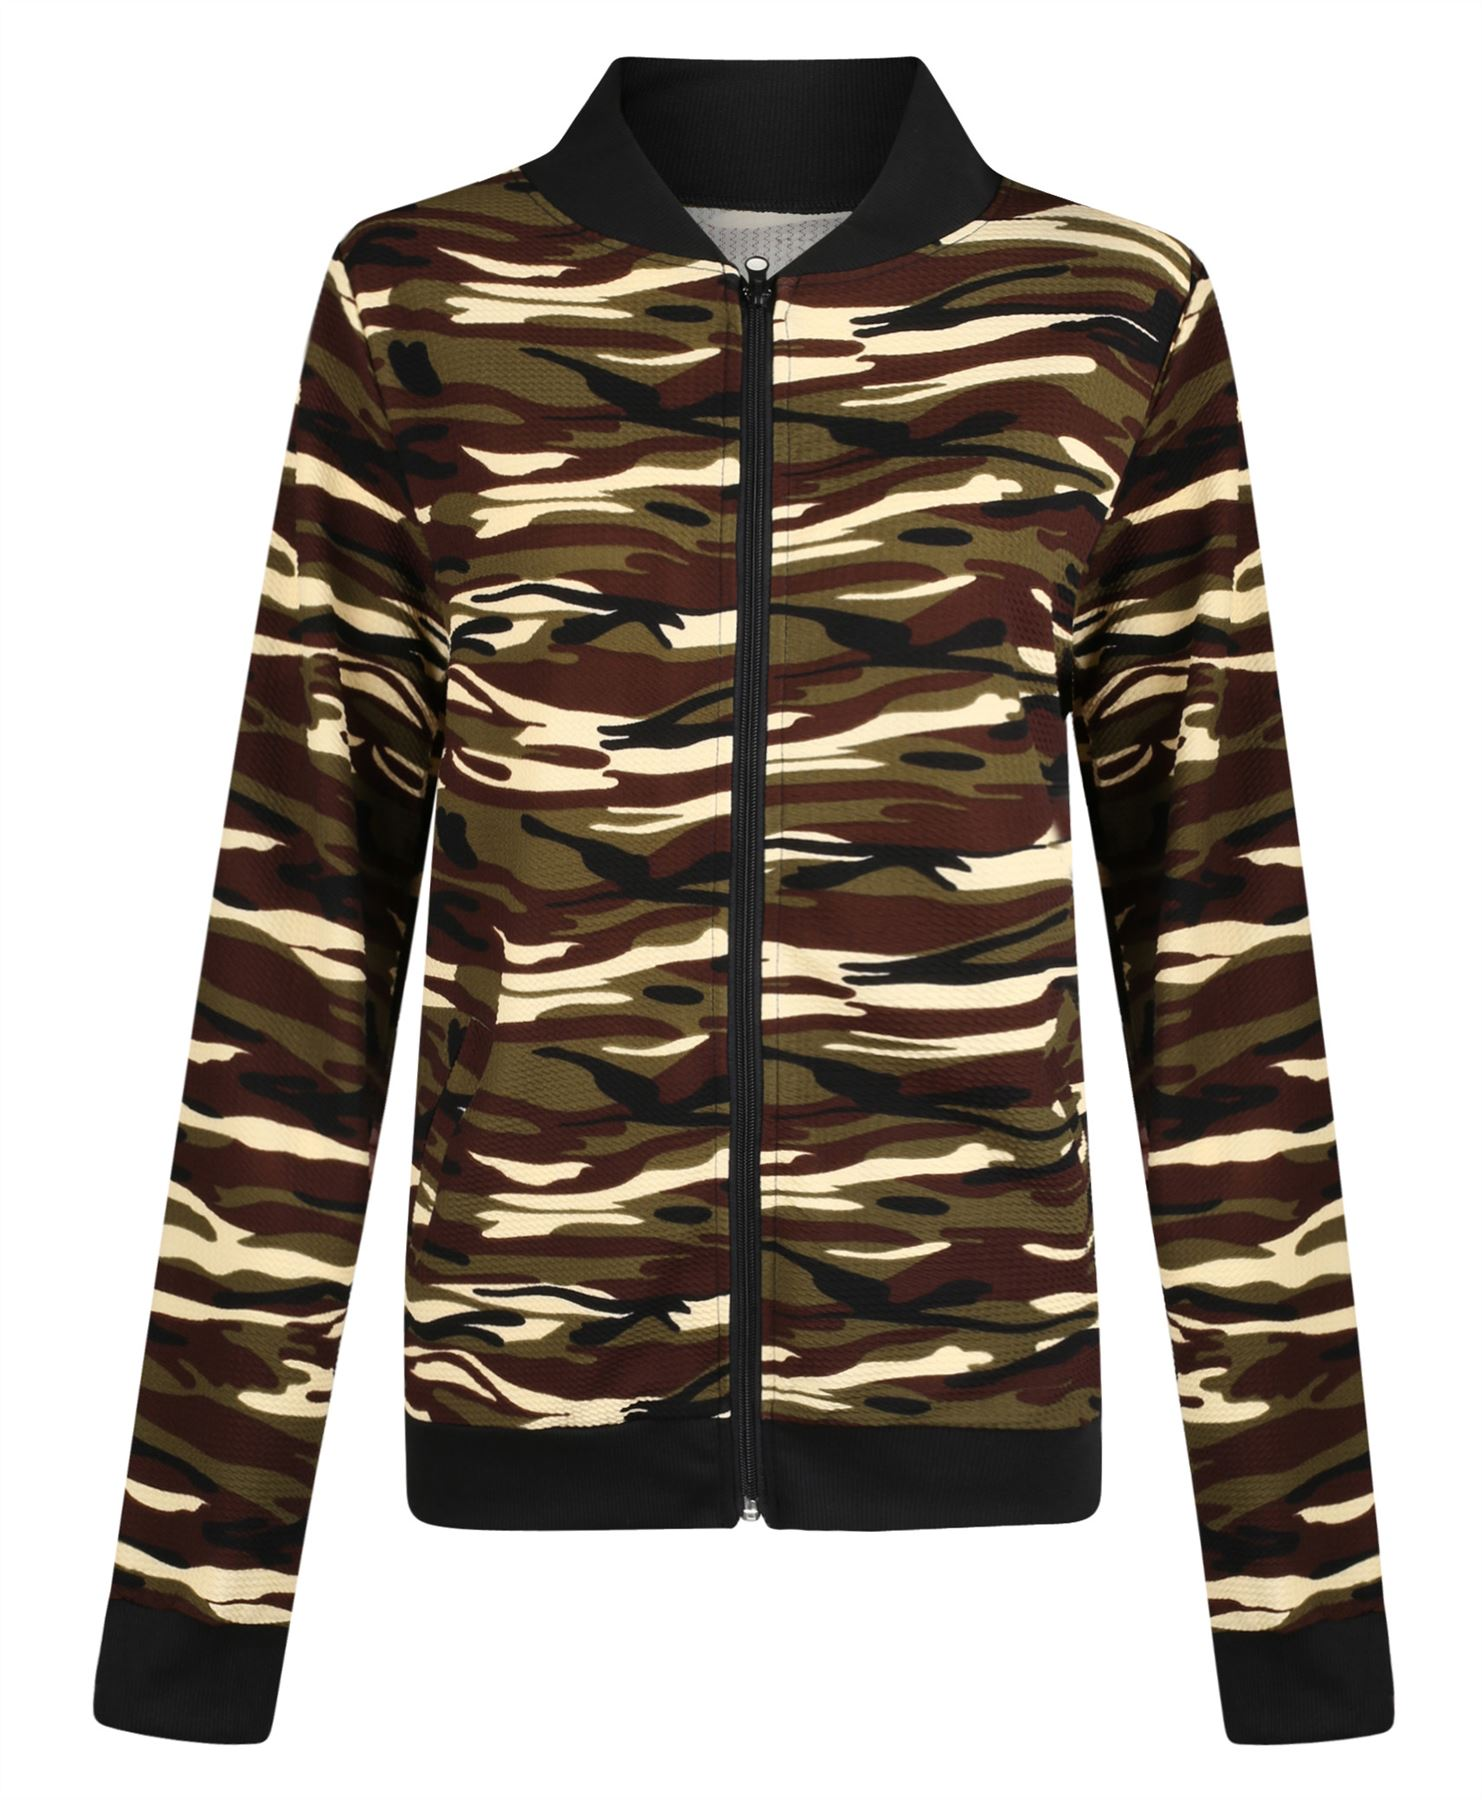 Looks - How to camouflage a wear print jacket video